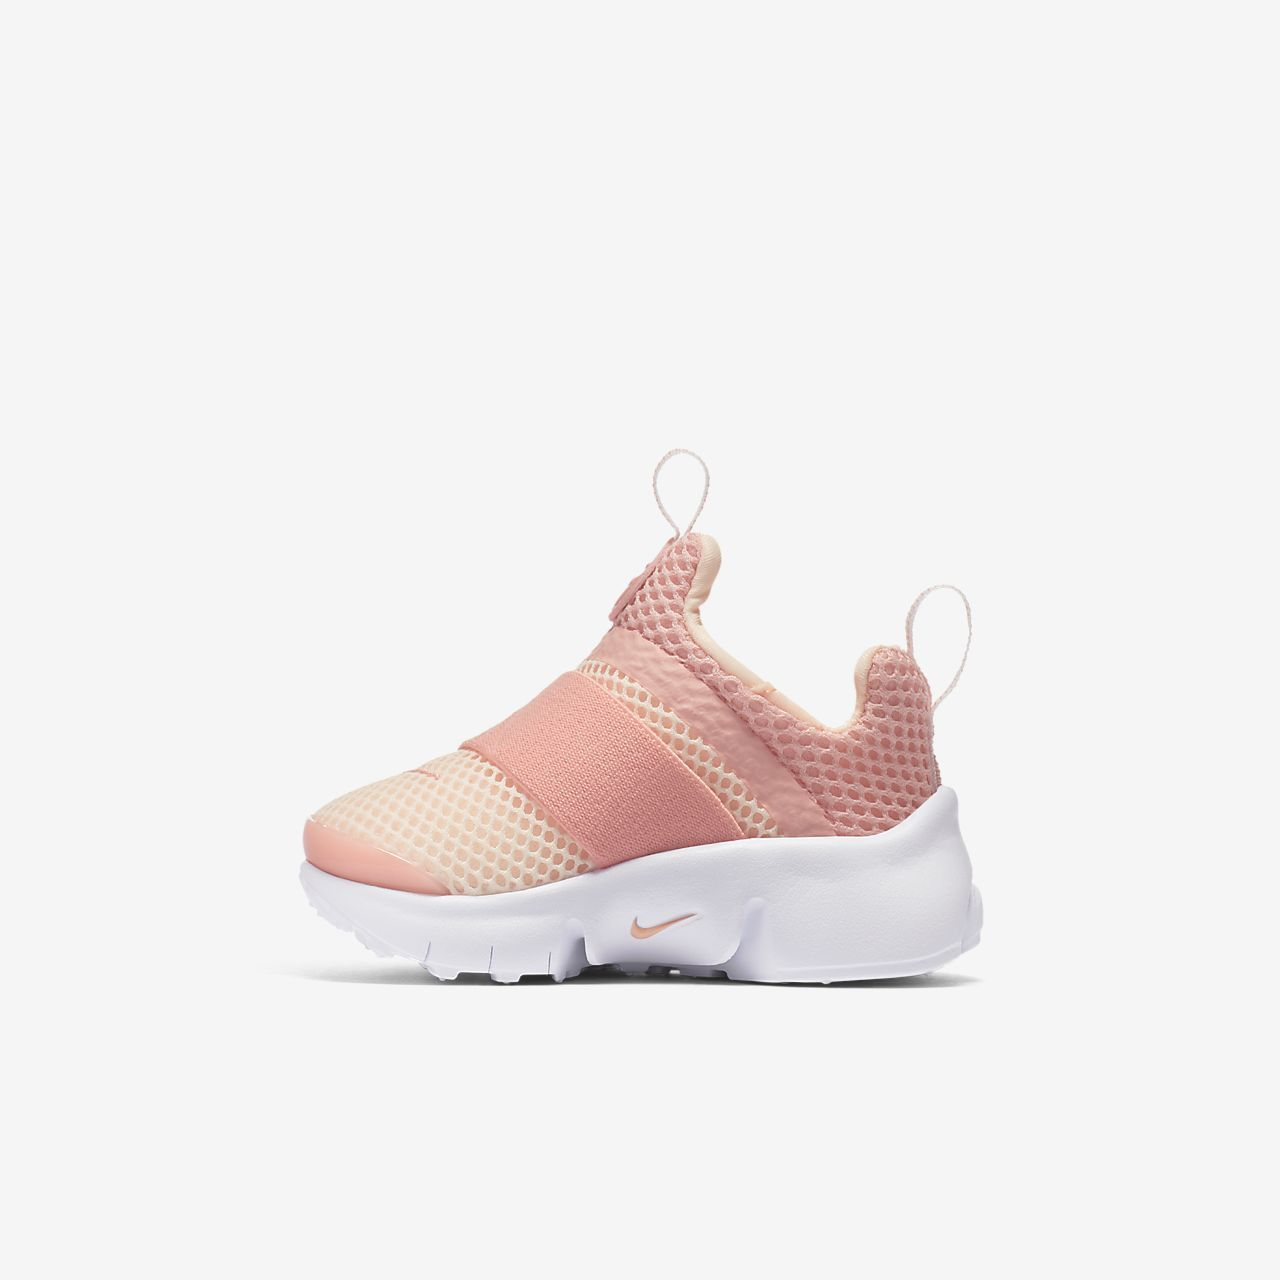 ajo De acuerdo con Sur oeste  Nike Presto Extreme Infant/Toddler Shoe | Baby girl shoes, Toddler shoes,  Kids shoes boys nike